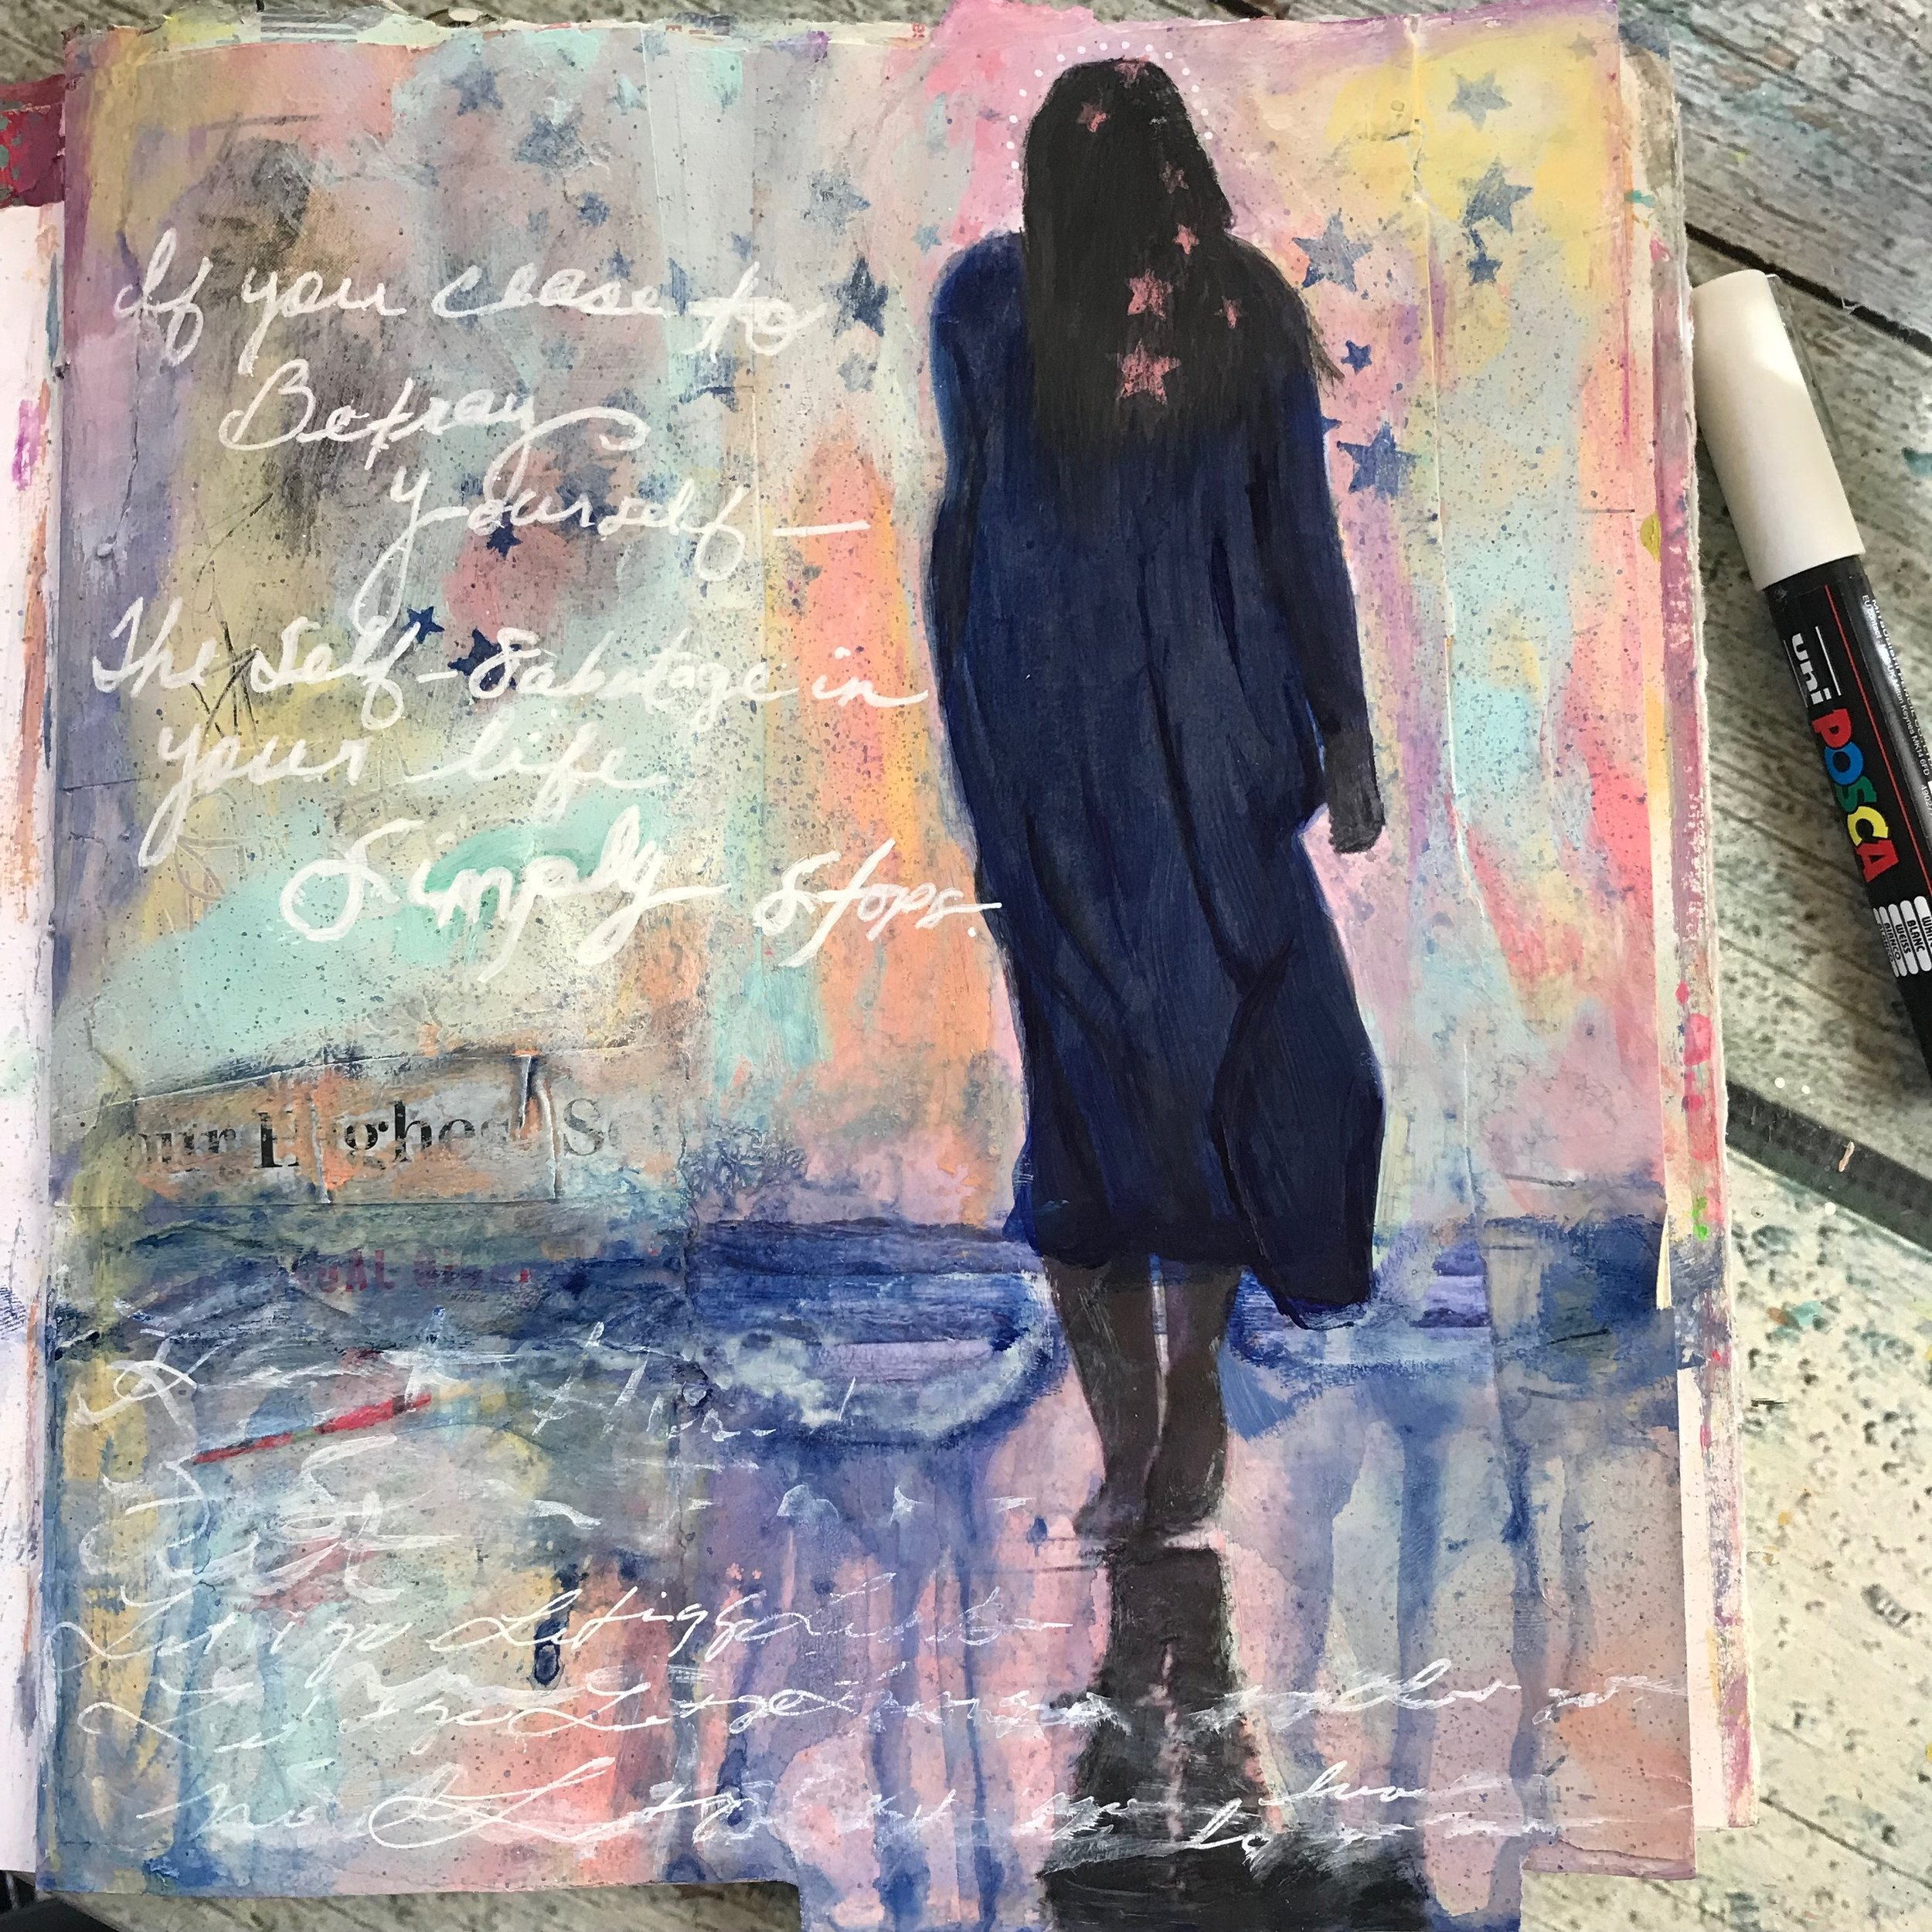 If you cease to betray yourself, the self sabotage in your life simply stops. A Human Design art journal by Cheryl Sosnowski createspacestudio.com